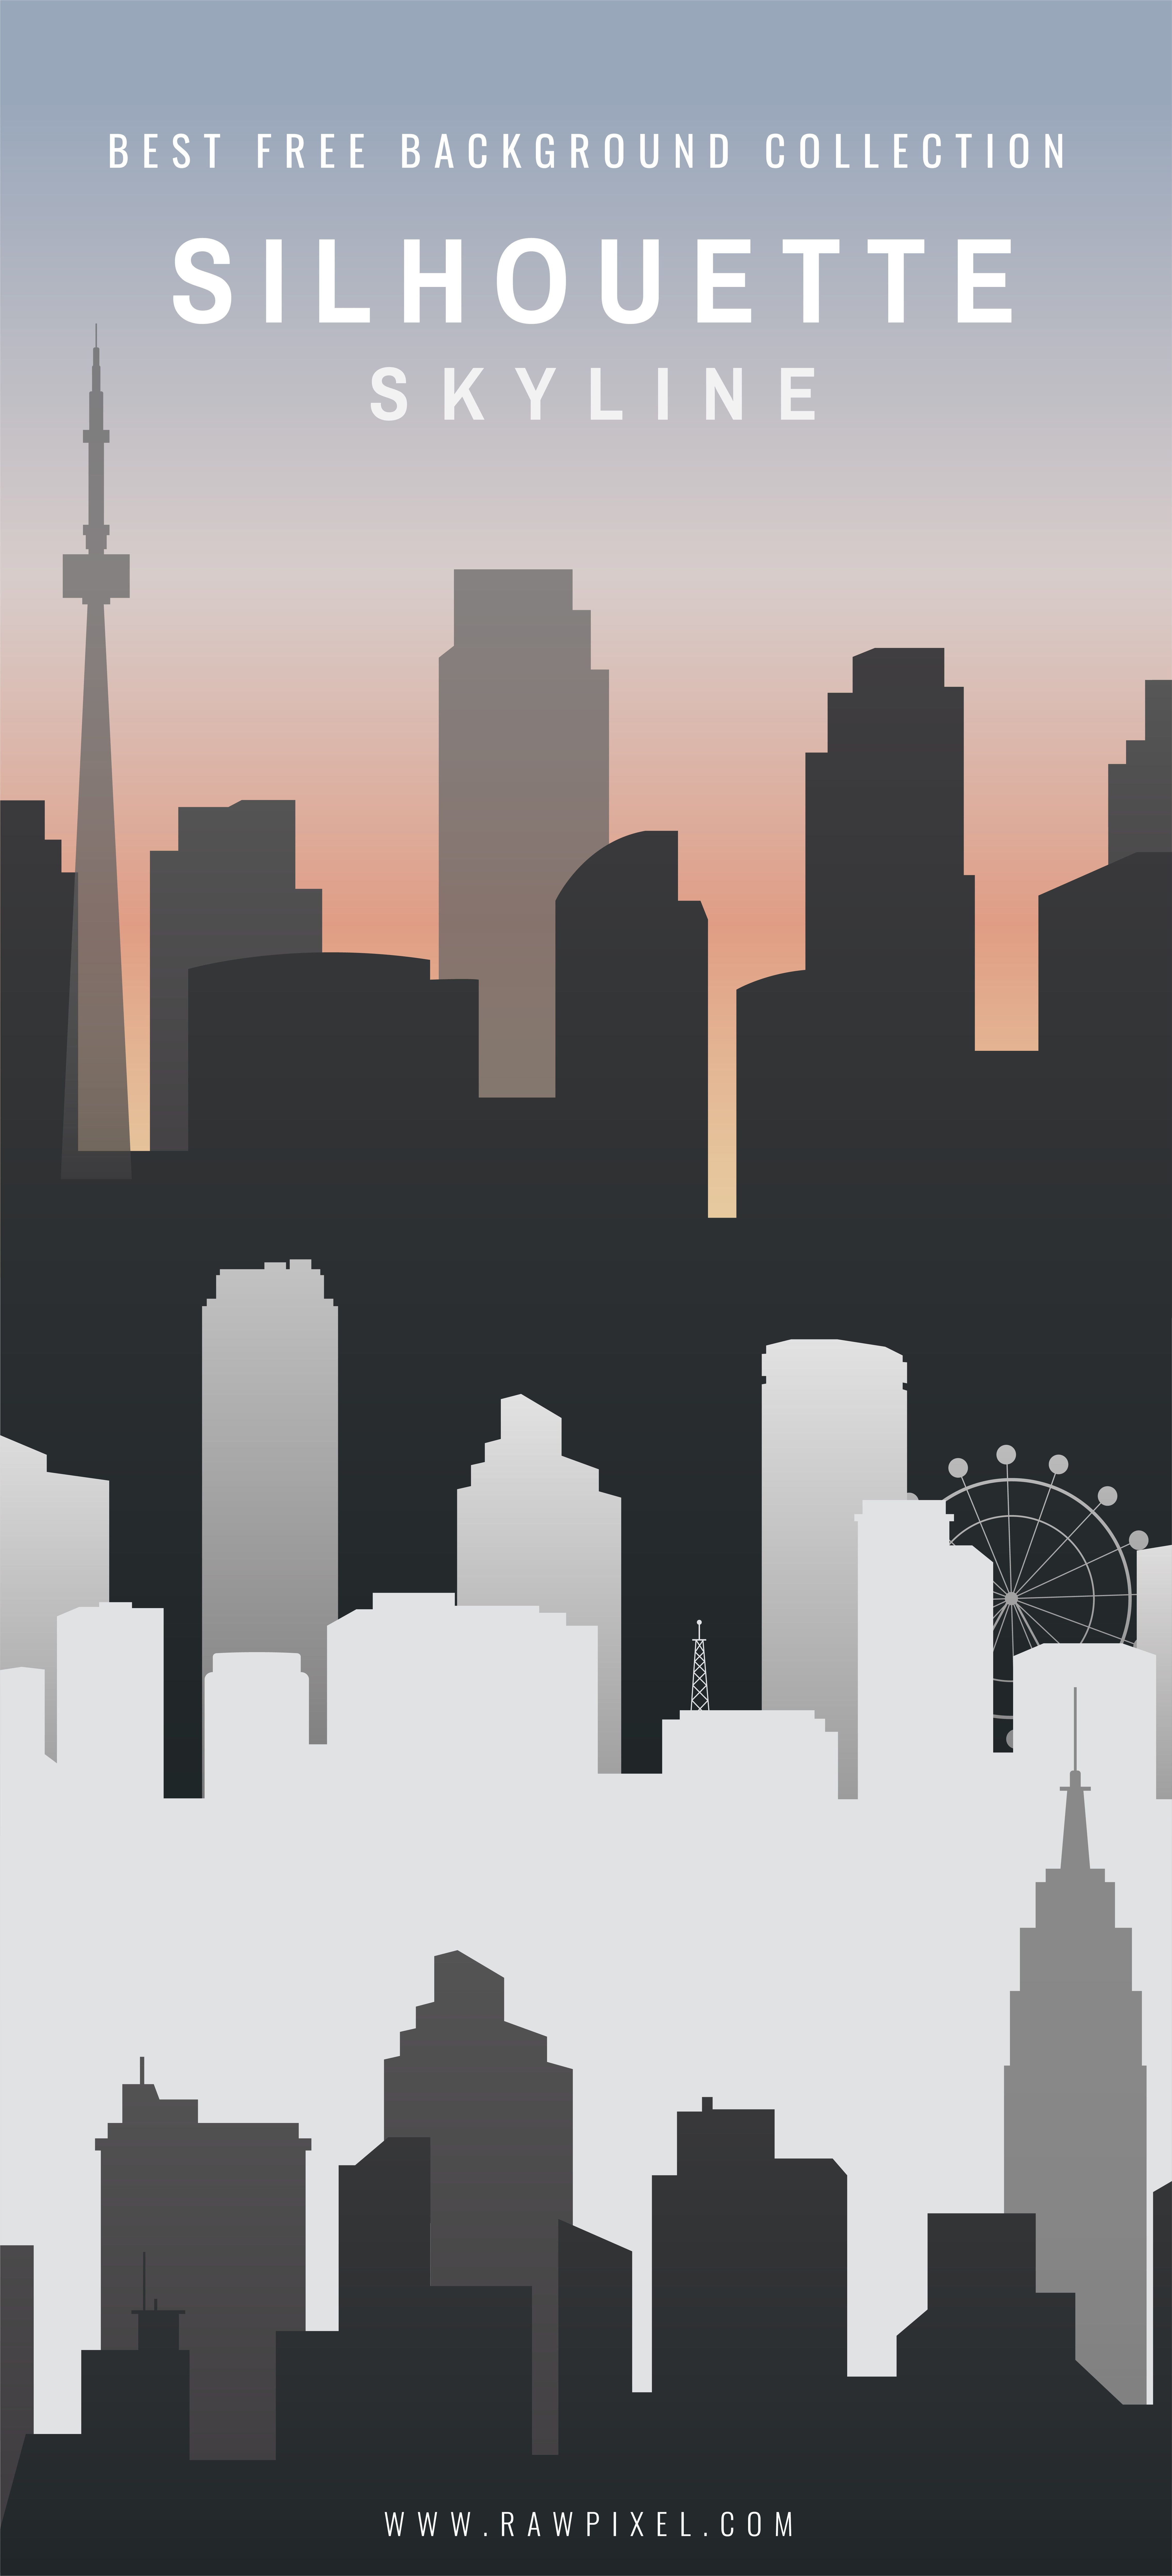 Download This Awesome City Skyline Silhouette Vectors As Well As Many More Mockups Vectors Illu City Skyline Art Silhouettes City Skyline Art City Silhouette